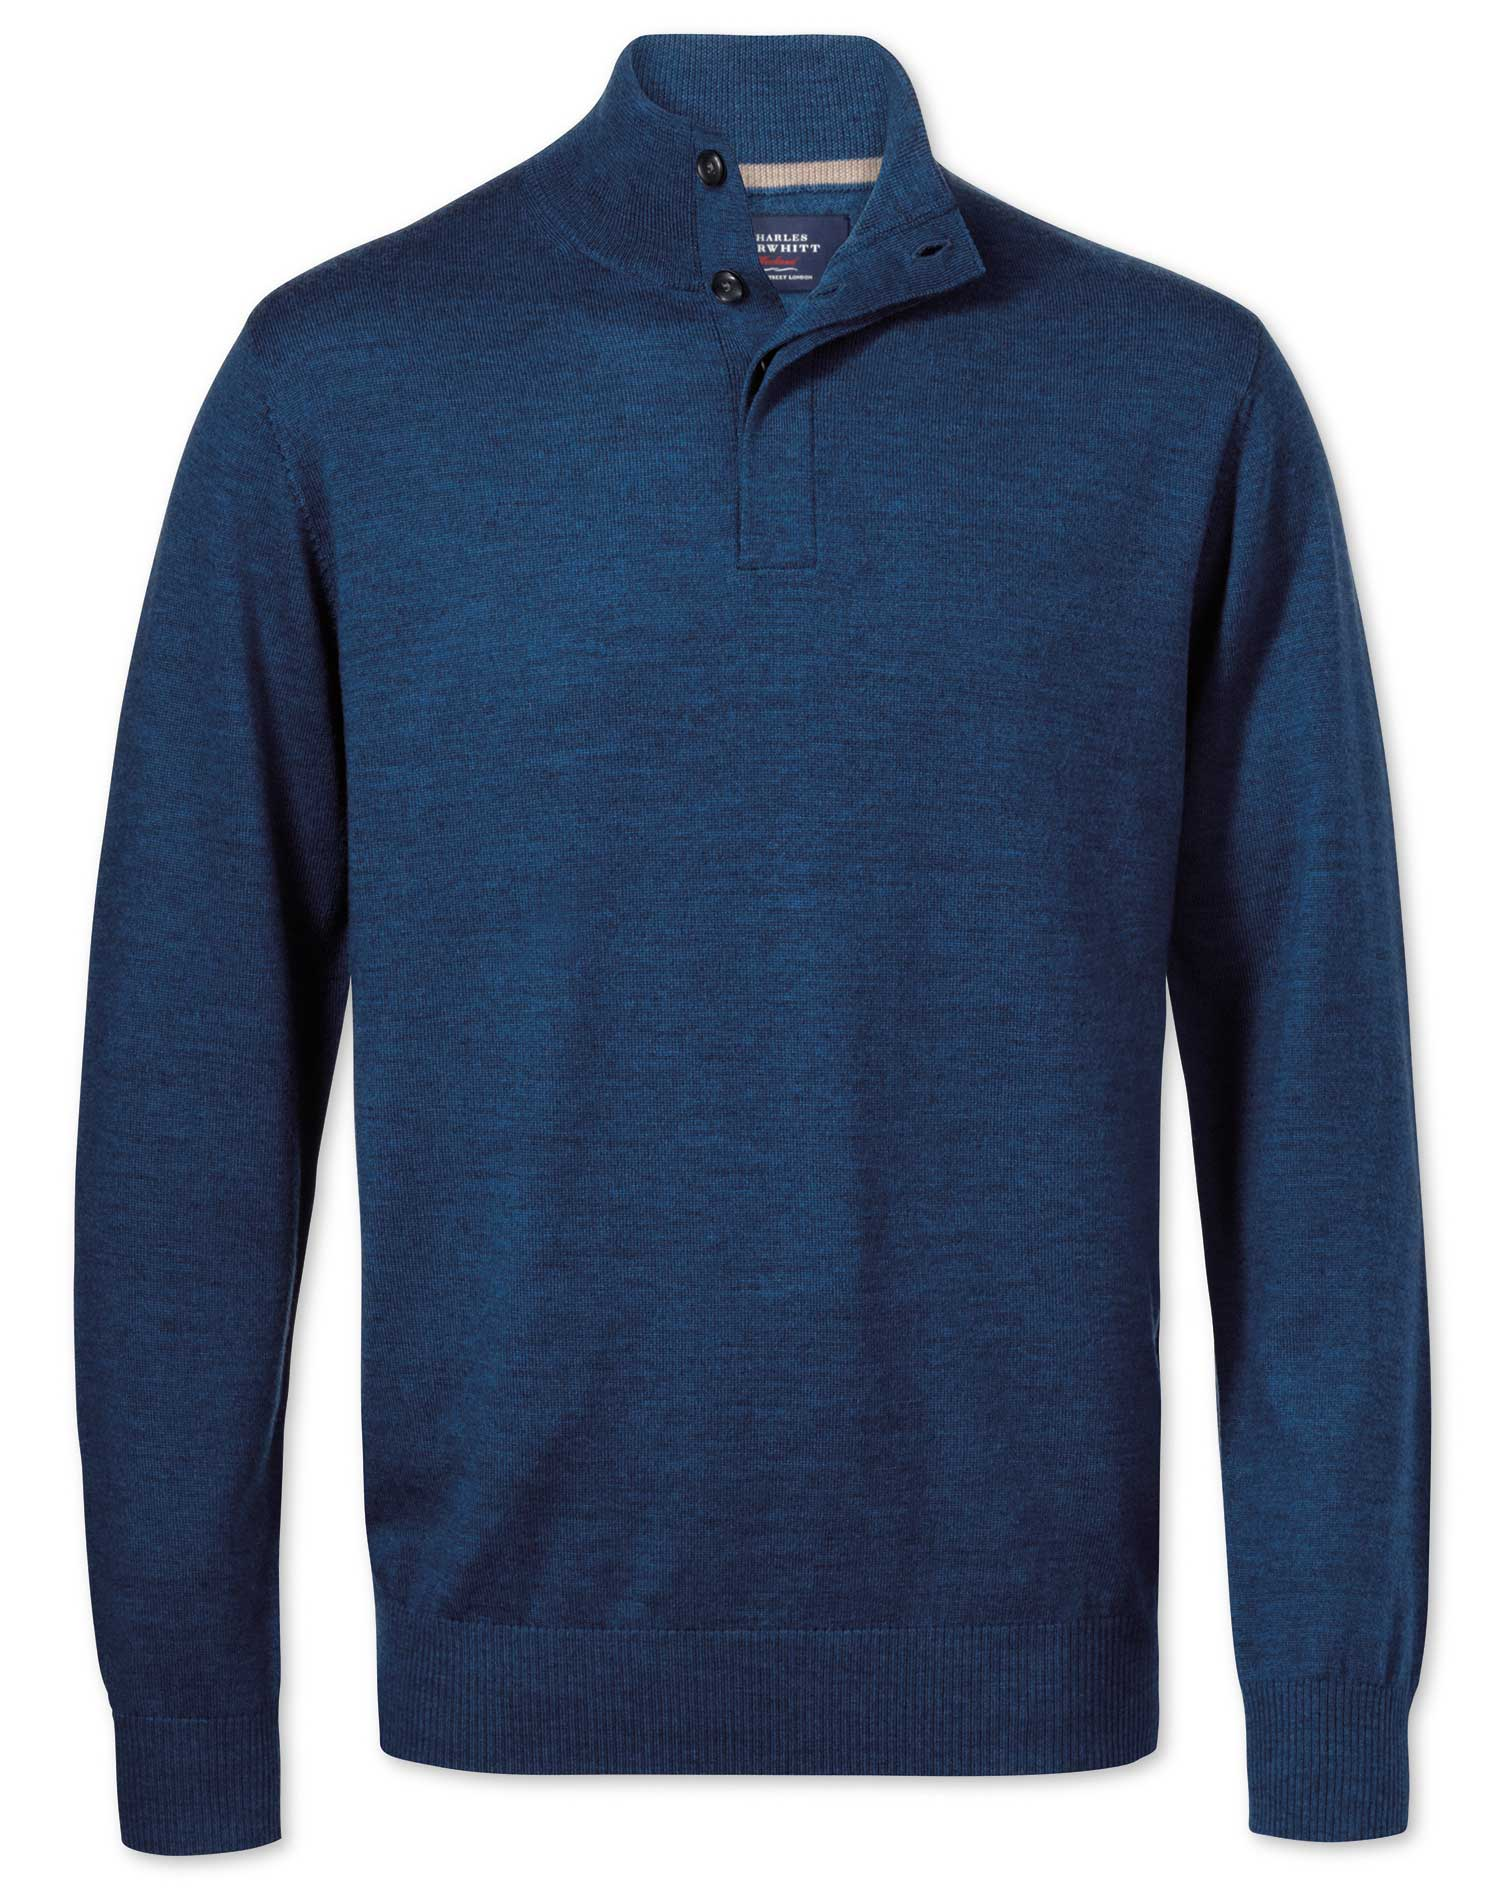 Mid Blue Merino Wool Button Neck Jumper Size Large by Charles Tyrwhitt